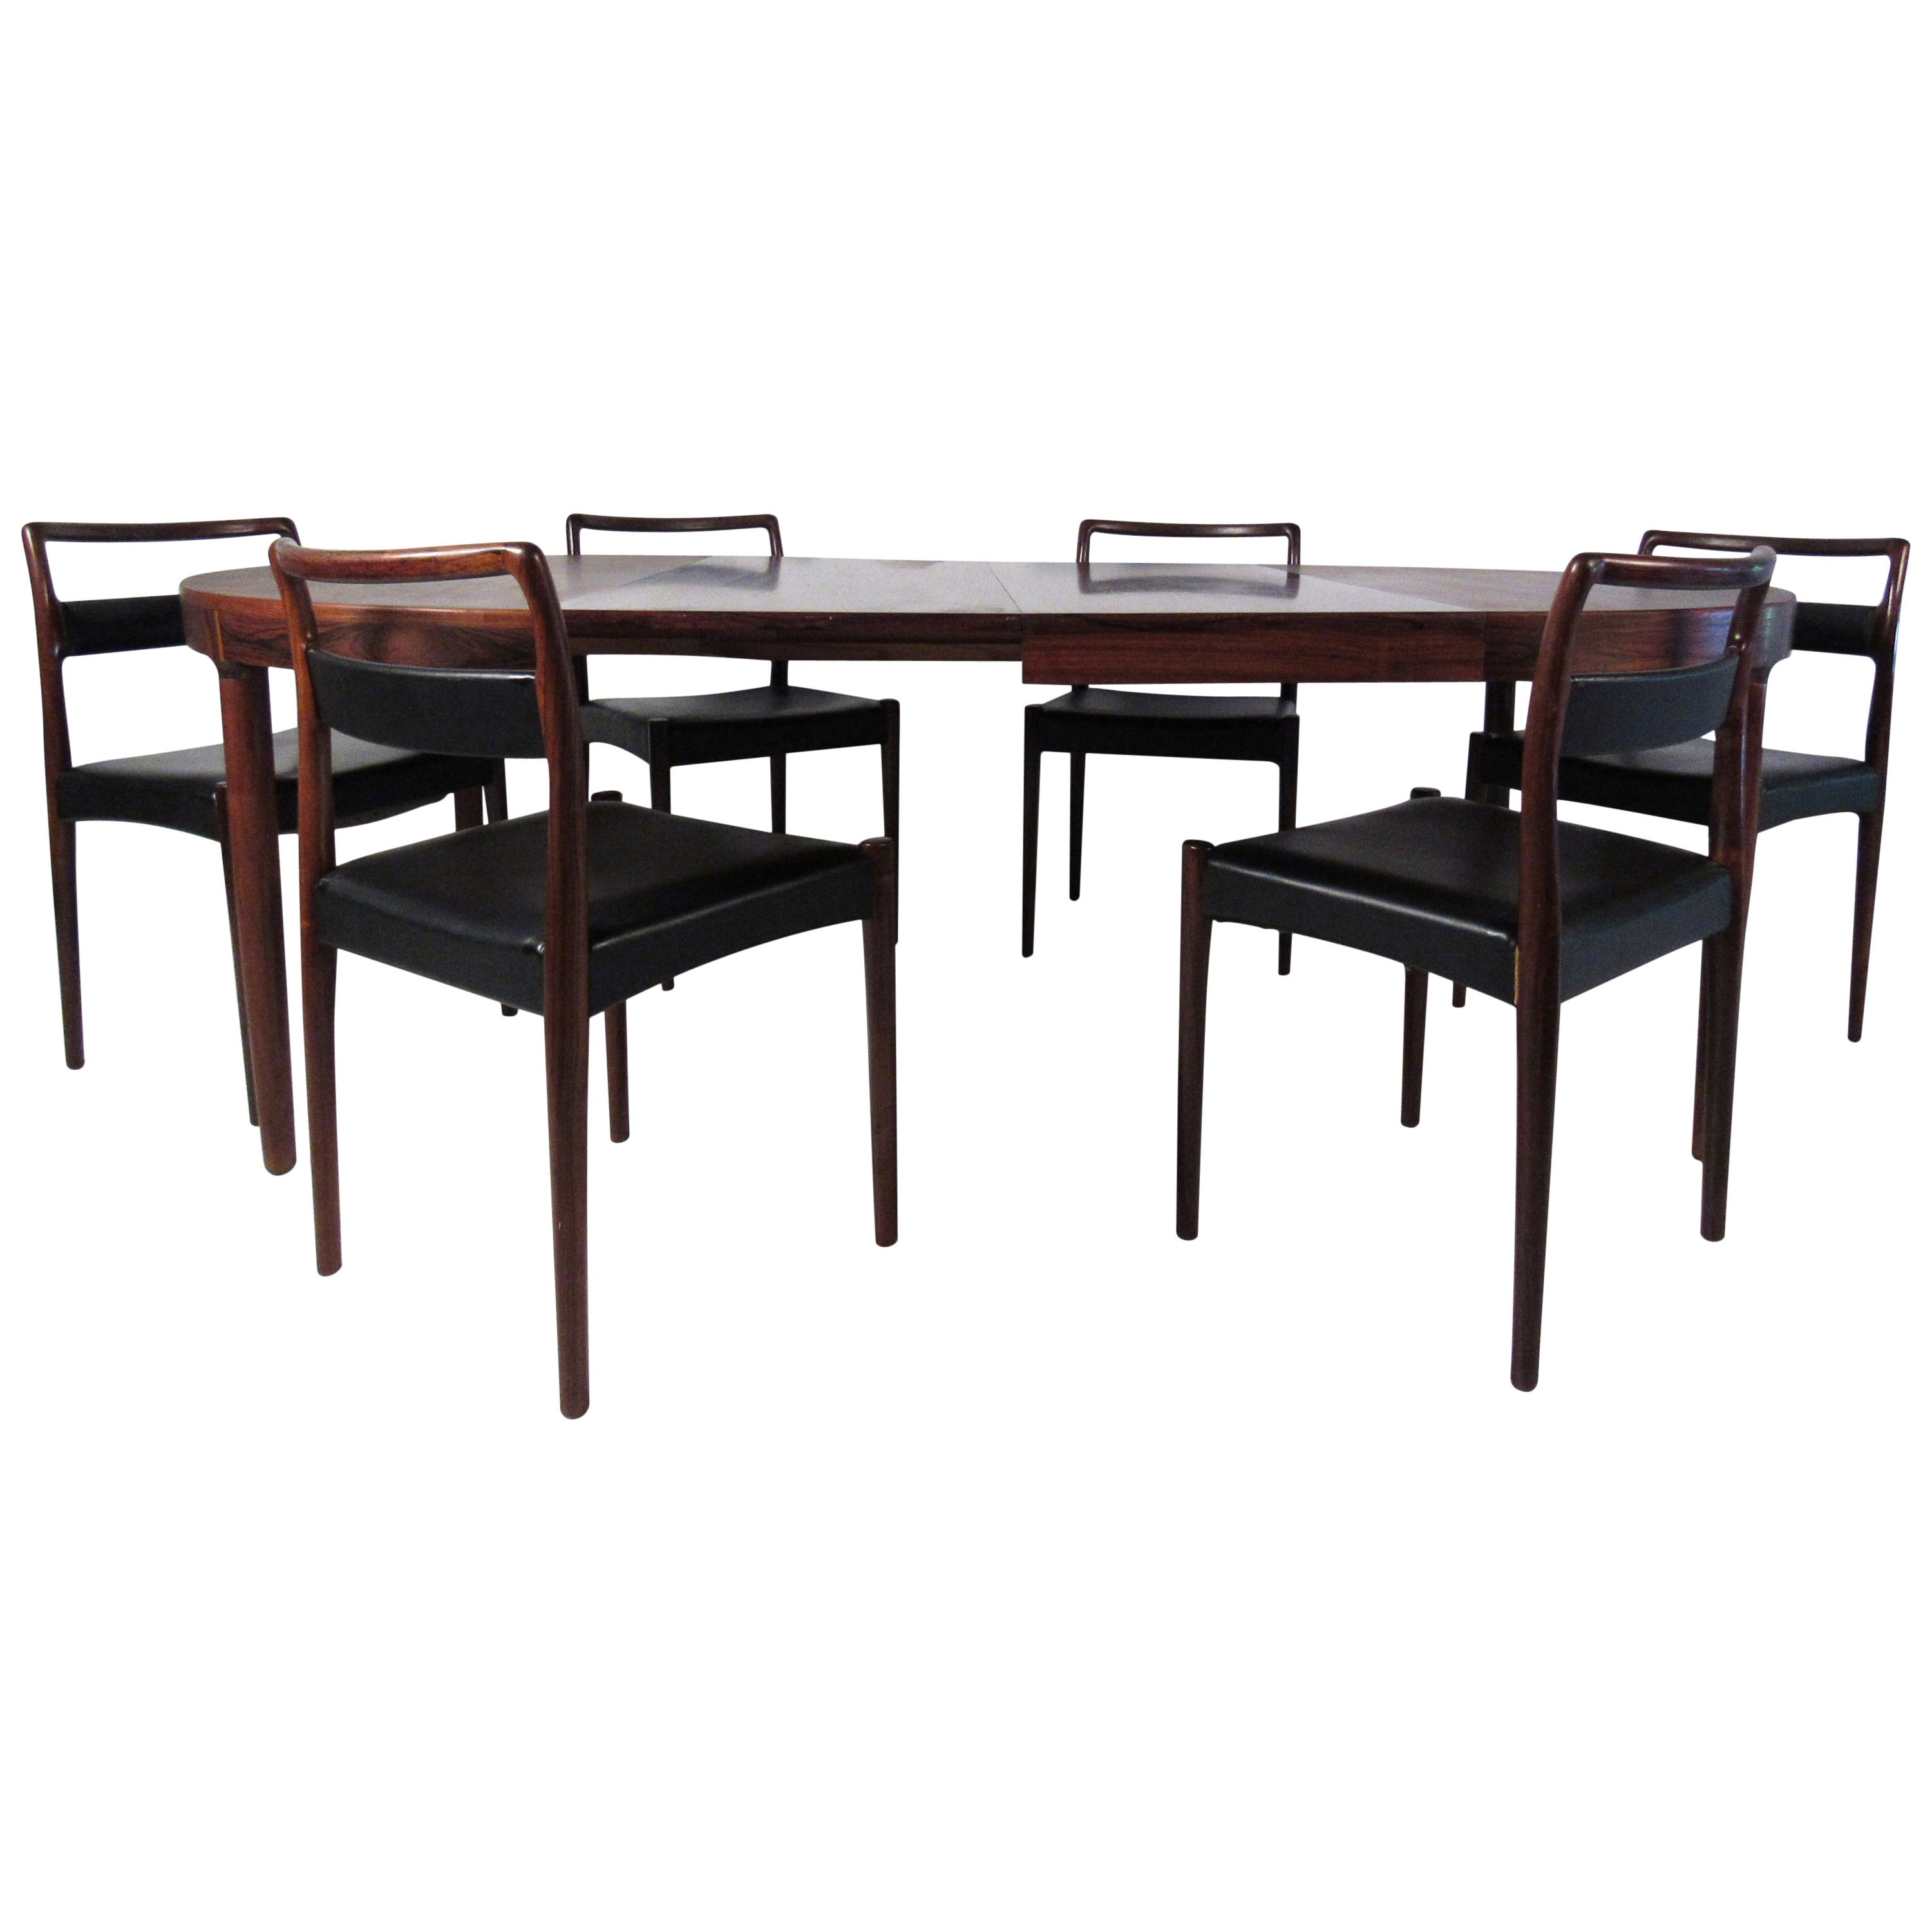 03b359b583203 Leather Dining Tables - 191 For Sale on 1stdibs